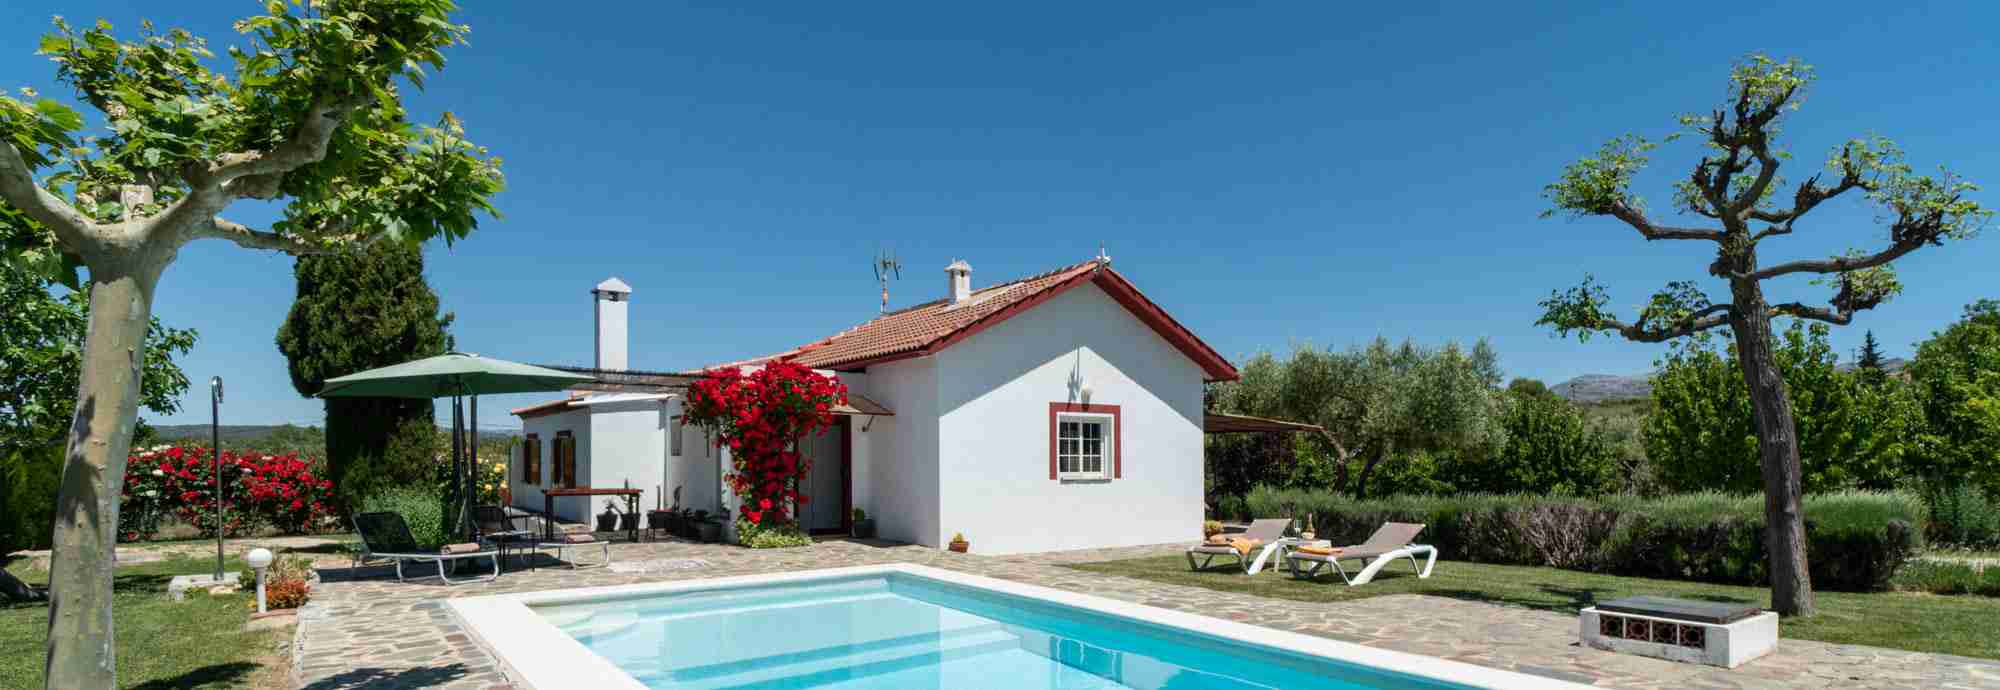 Private 2 bedroom country villa with pool and garden very close to Ronda